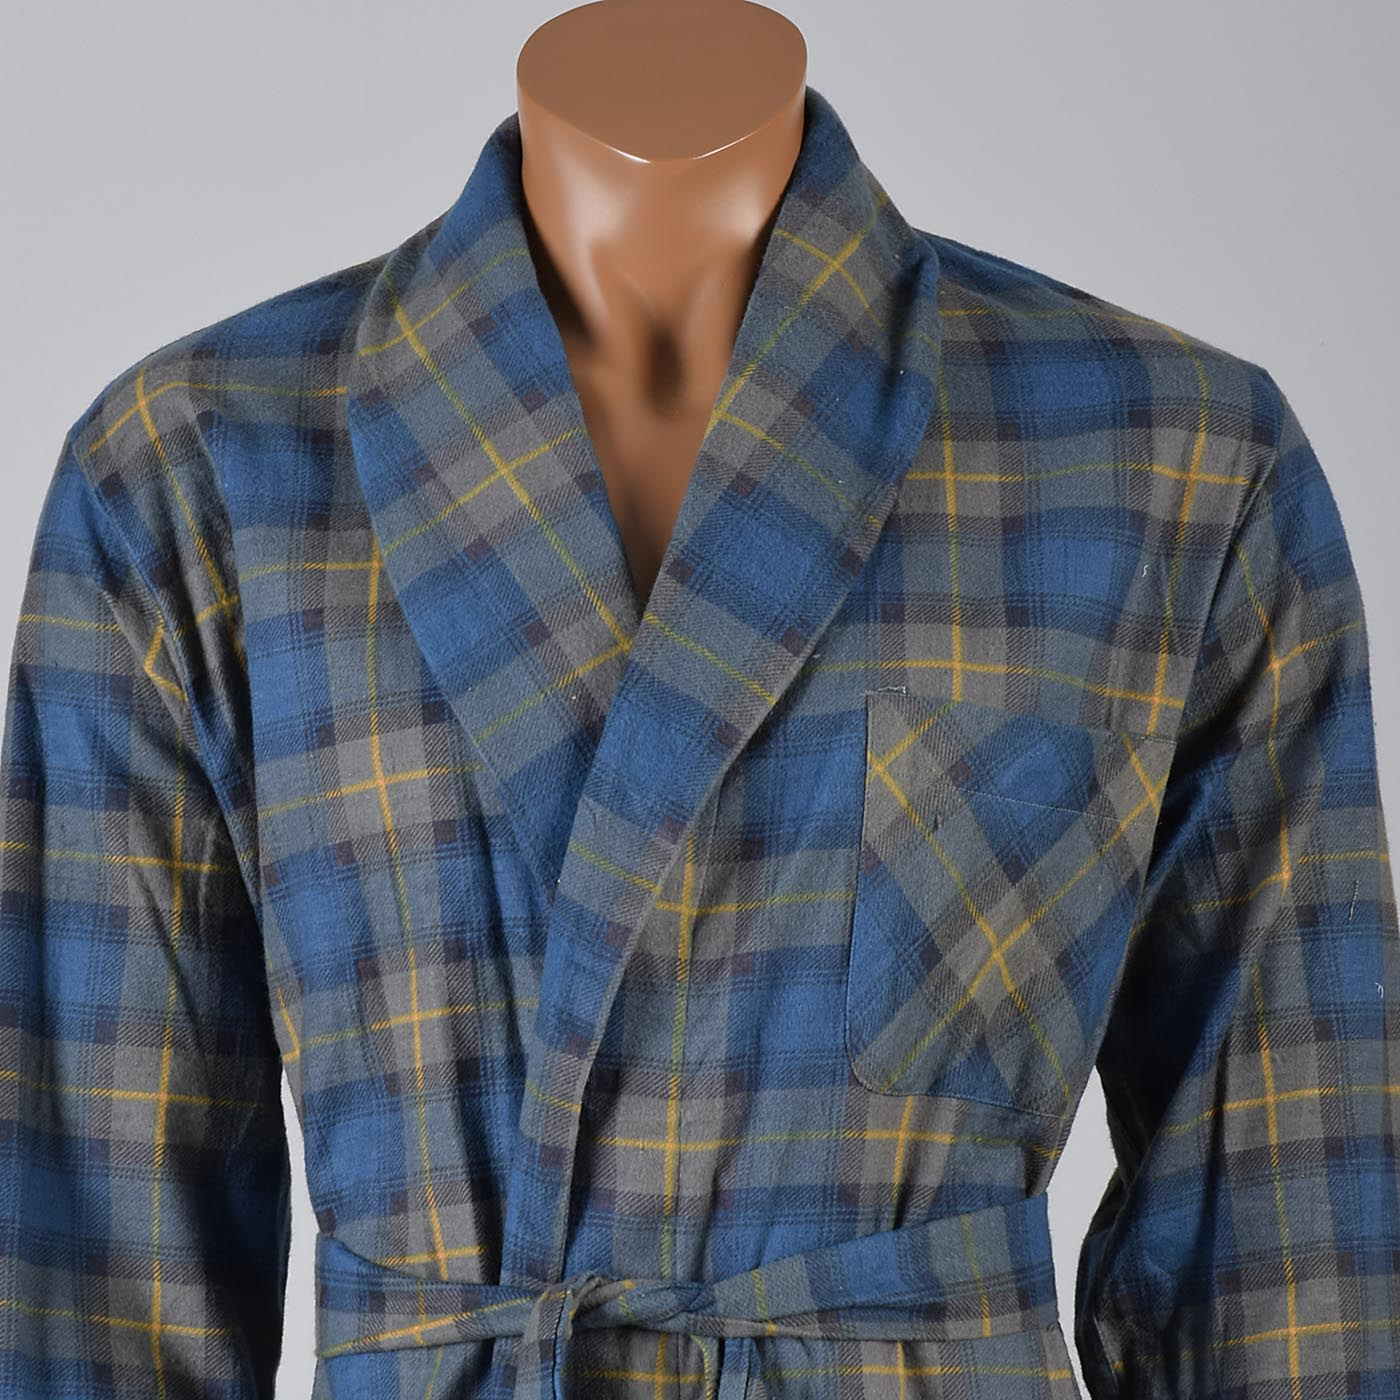 1960s Mens Deadstock Flannel Robe in Blue and Green Plaid